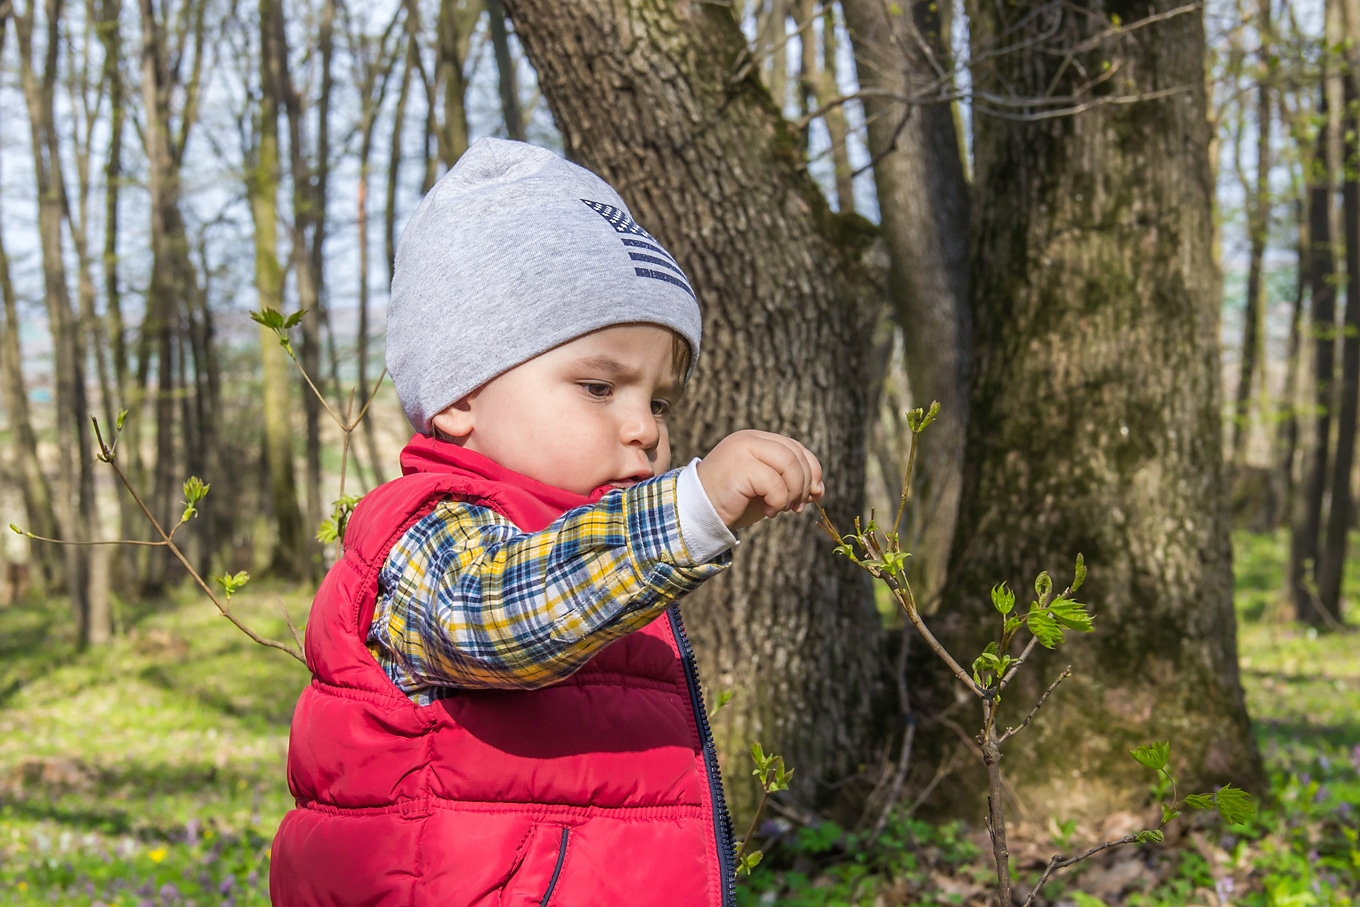 Child Examining a Leaf on a Nature Walk